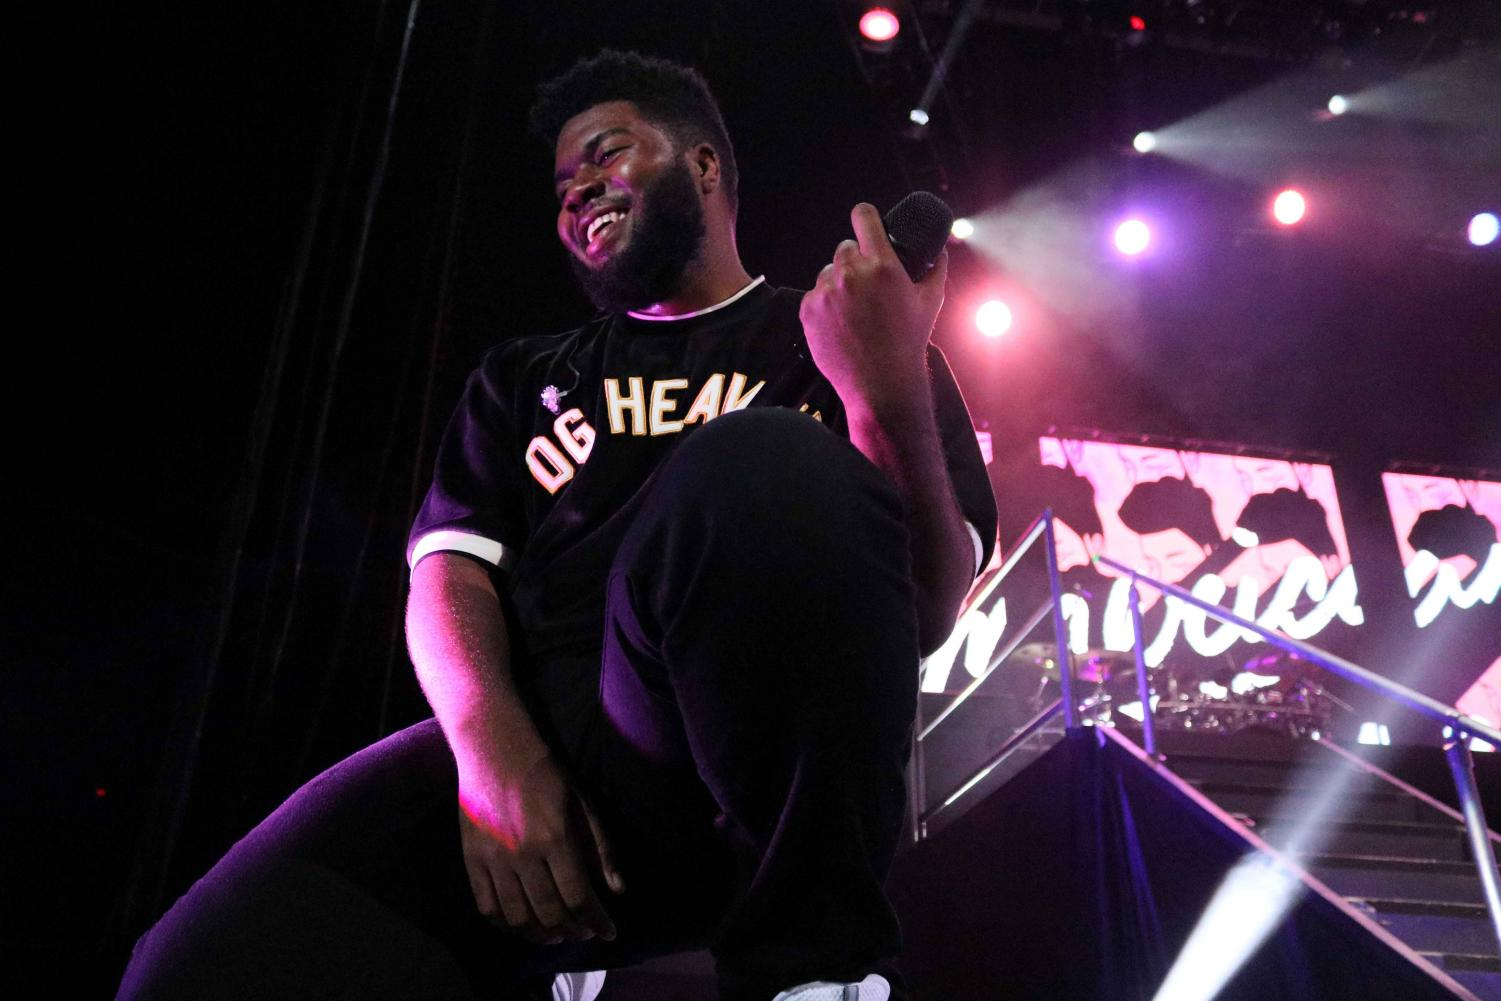 Khalid performs for a sold out crowd in the first of his two hometown shows at the Don Haskins Center on Friday, Sept. 14.